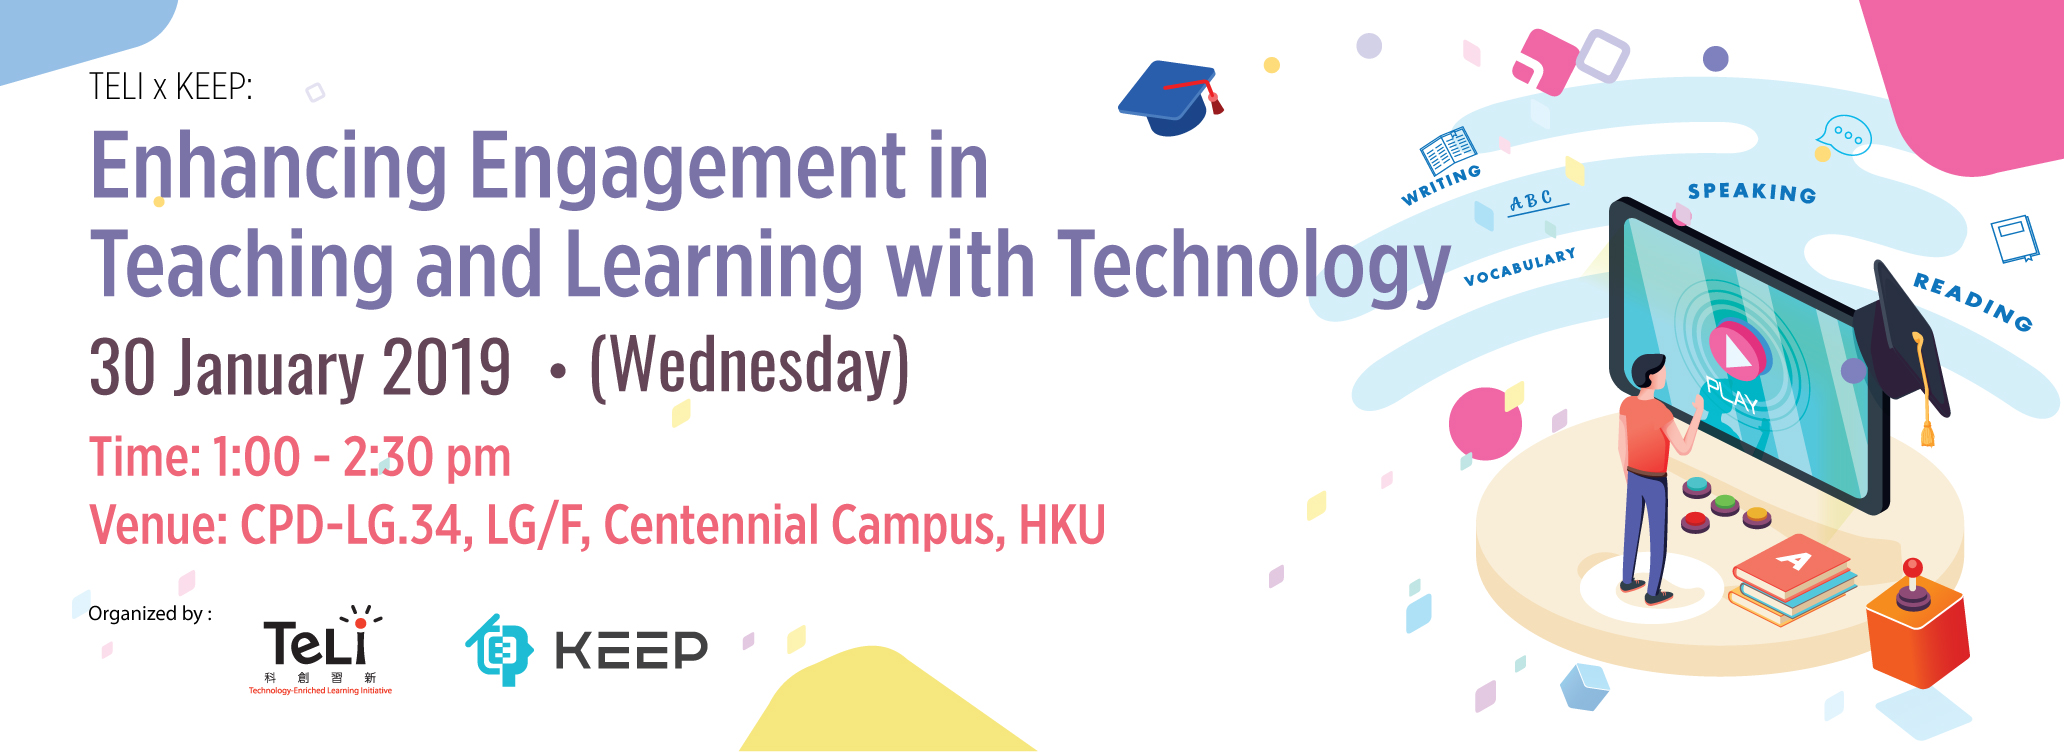 TELI X KEEP: Enhancing Engagement in Teaching and Learning with Technology